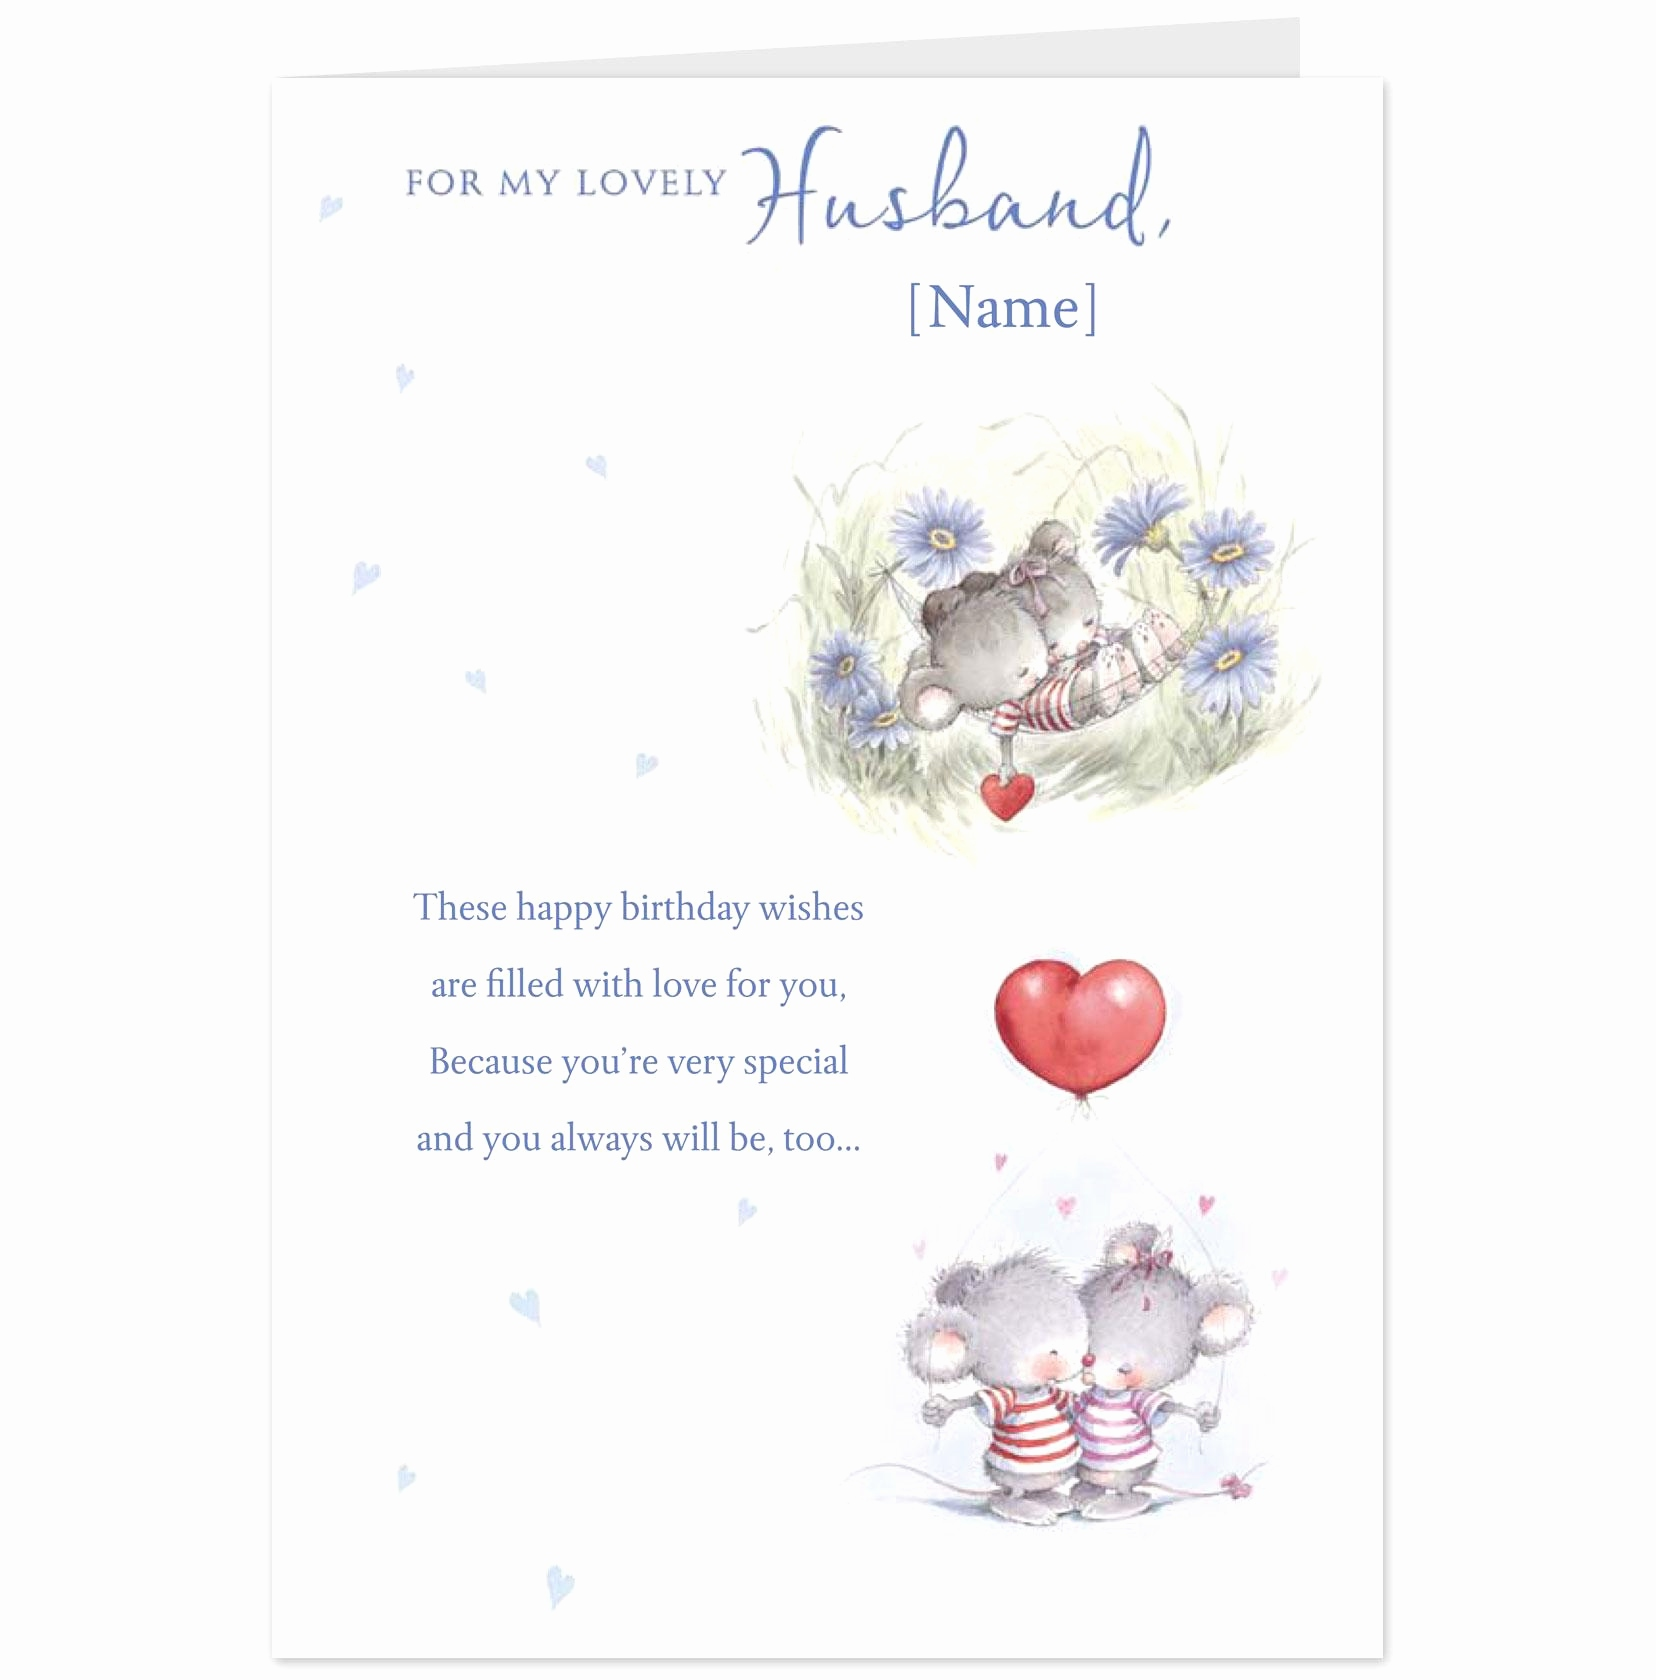 hallmark a birthday wish ; love-birthday-card-messages-for-her-lovely-hallmark-easter-husband-roll-over-image-to-zoom-in-prev-of-love-birthday-card-messages-for-her